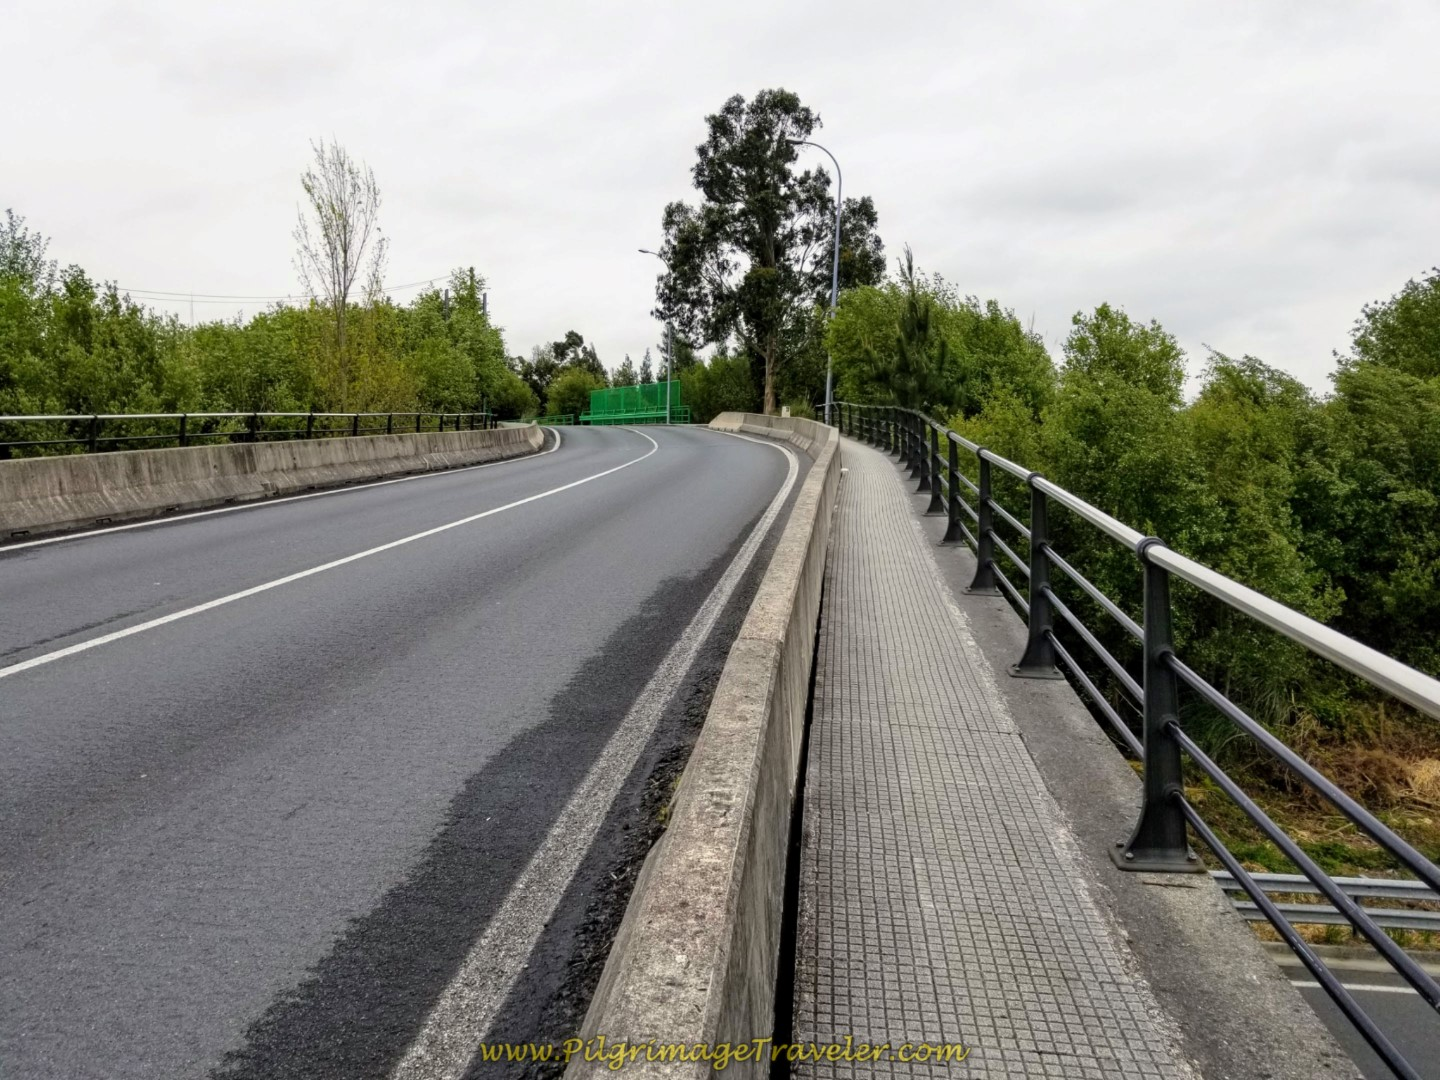 The Camino Joins the Pavement and Crosses the FE-11 on Bridge on day one of the Camino Inglés